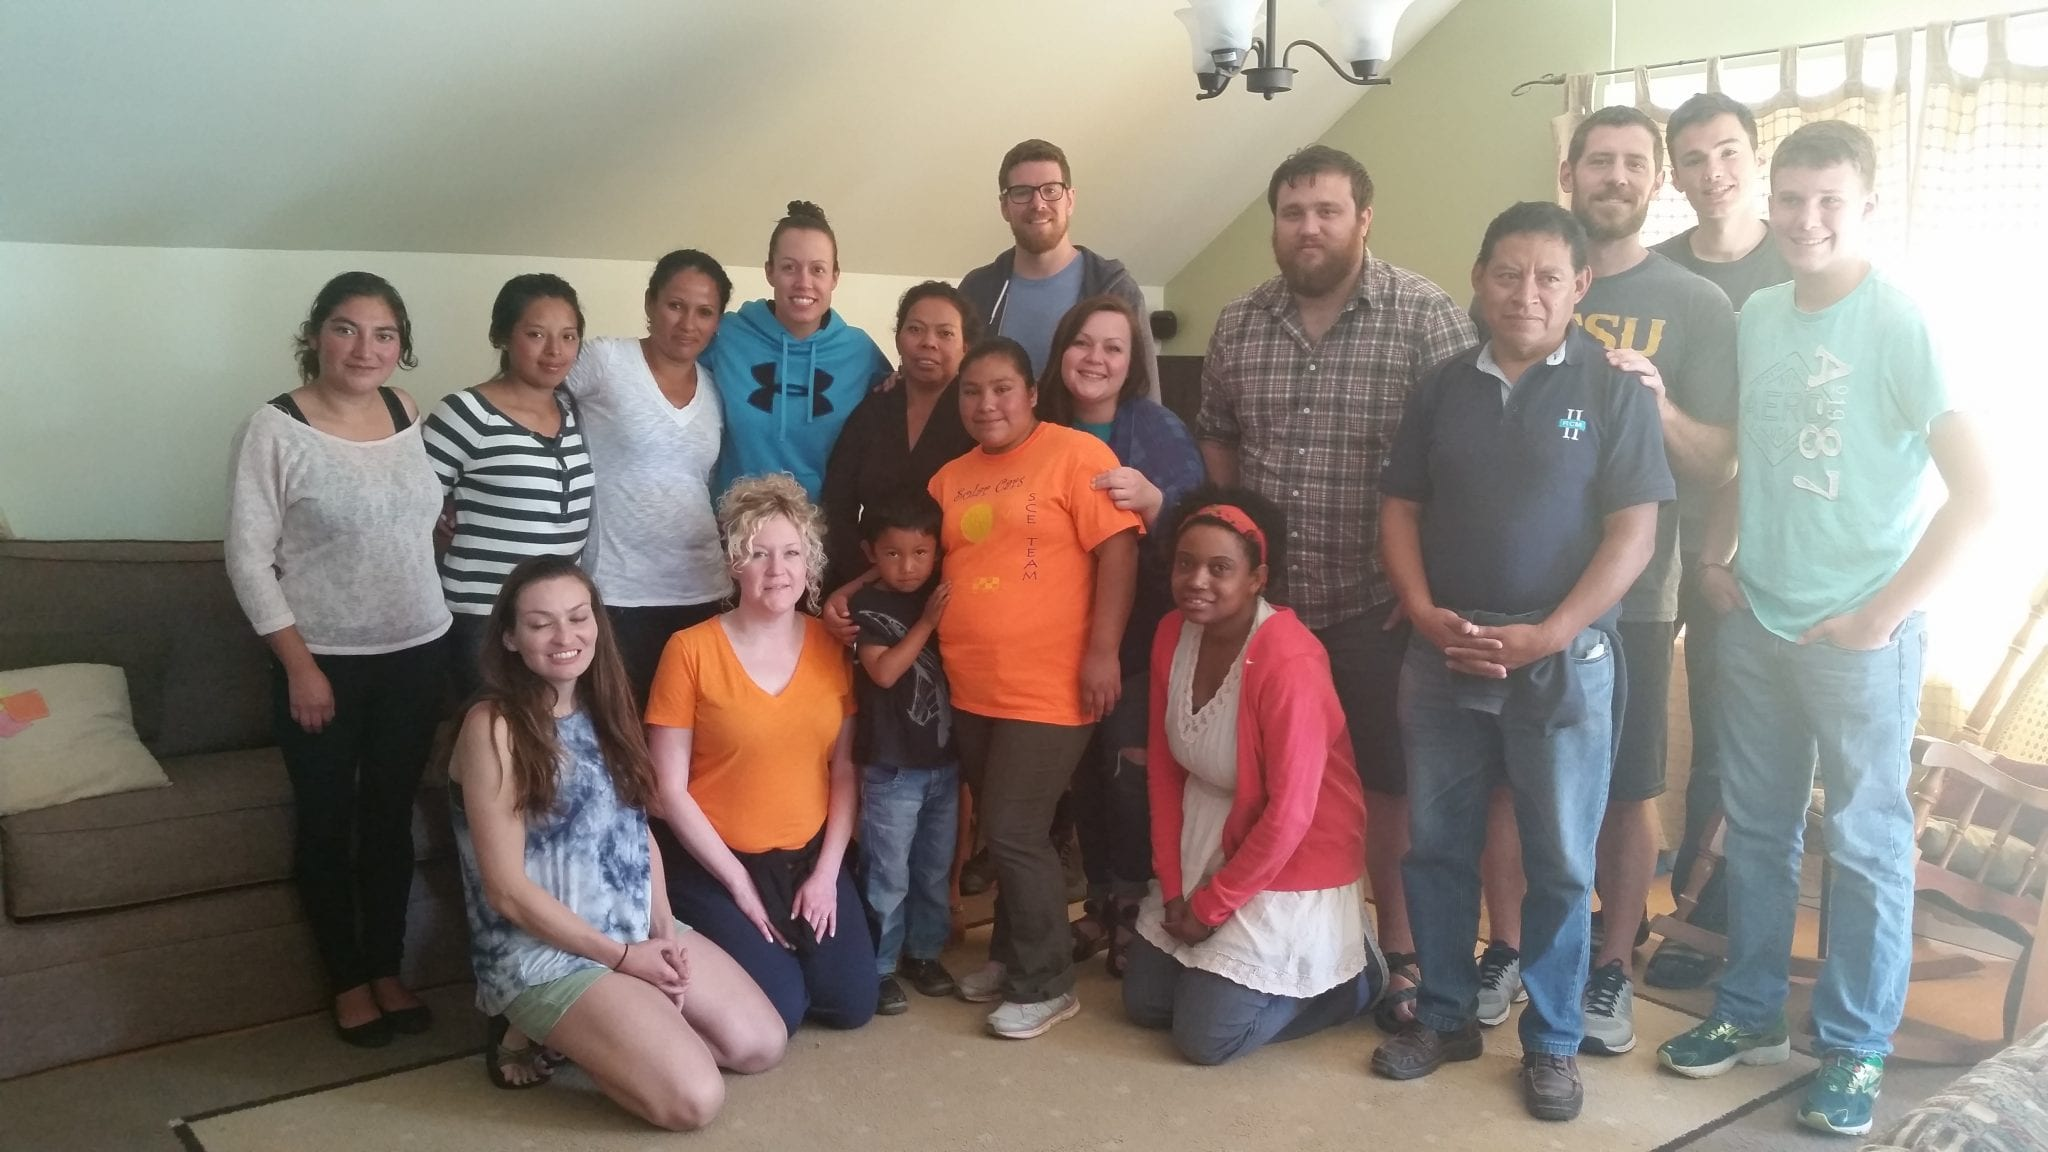 Mission team from Redeemer Church in Johnson City, TN